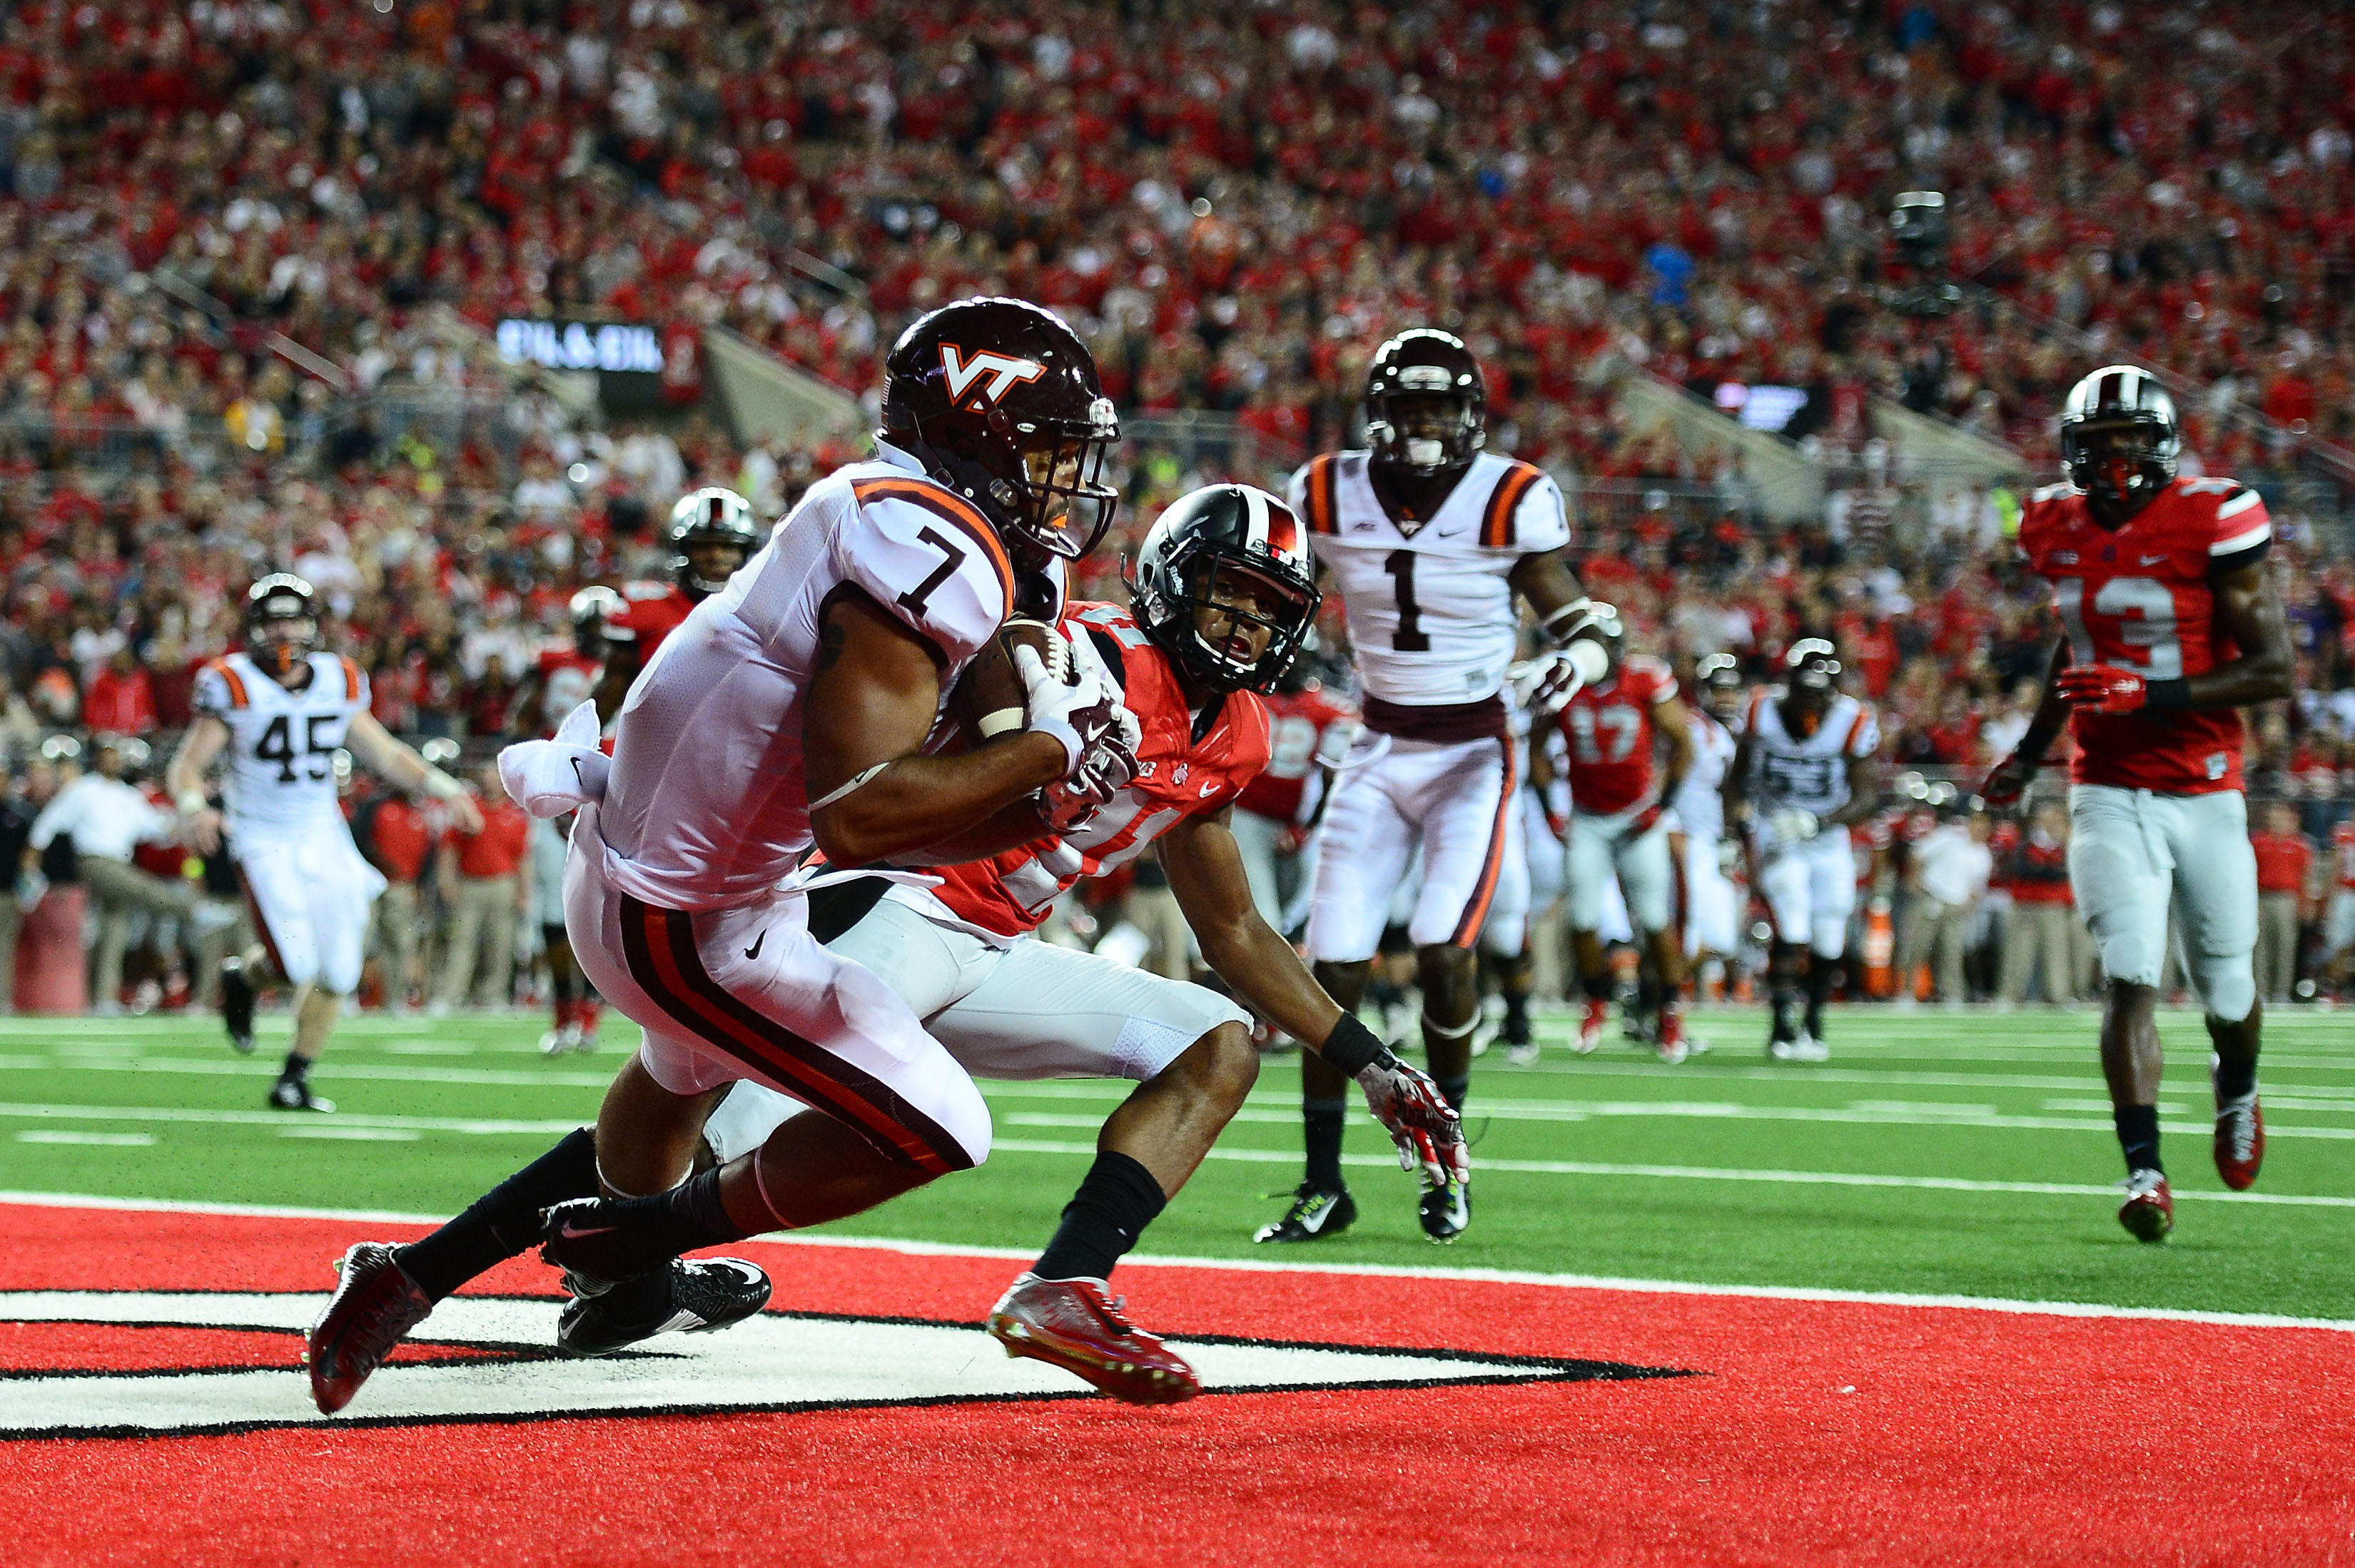 Virginia Tech tight end Bucky Hodges catches a pass in the end zone for a touchdown against Ohio State.